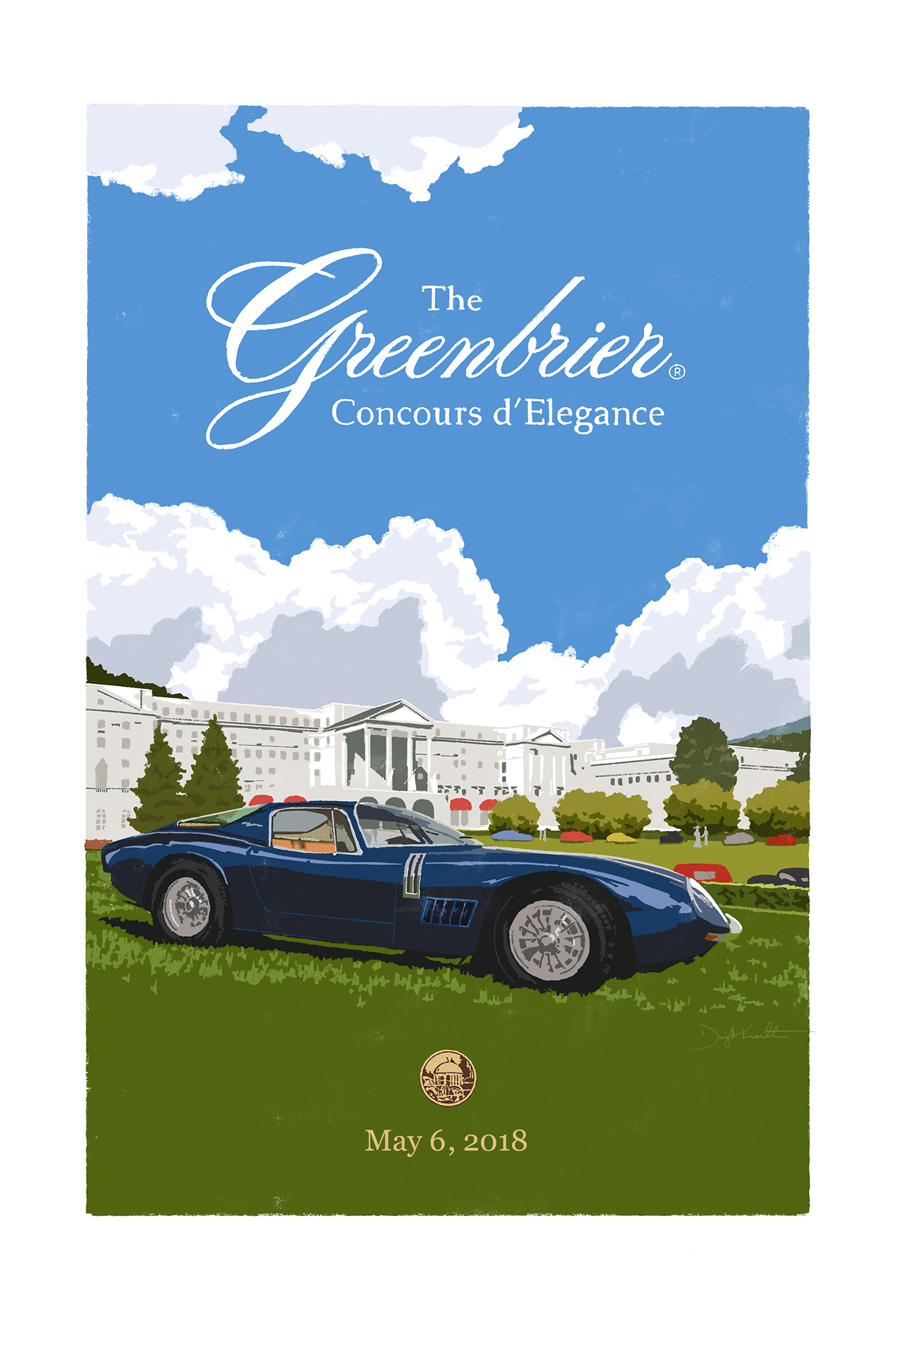 Greenbrier Concours d'Elegance poster illustration and design by Dwight Knowlton